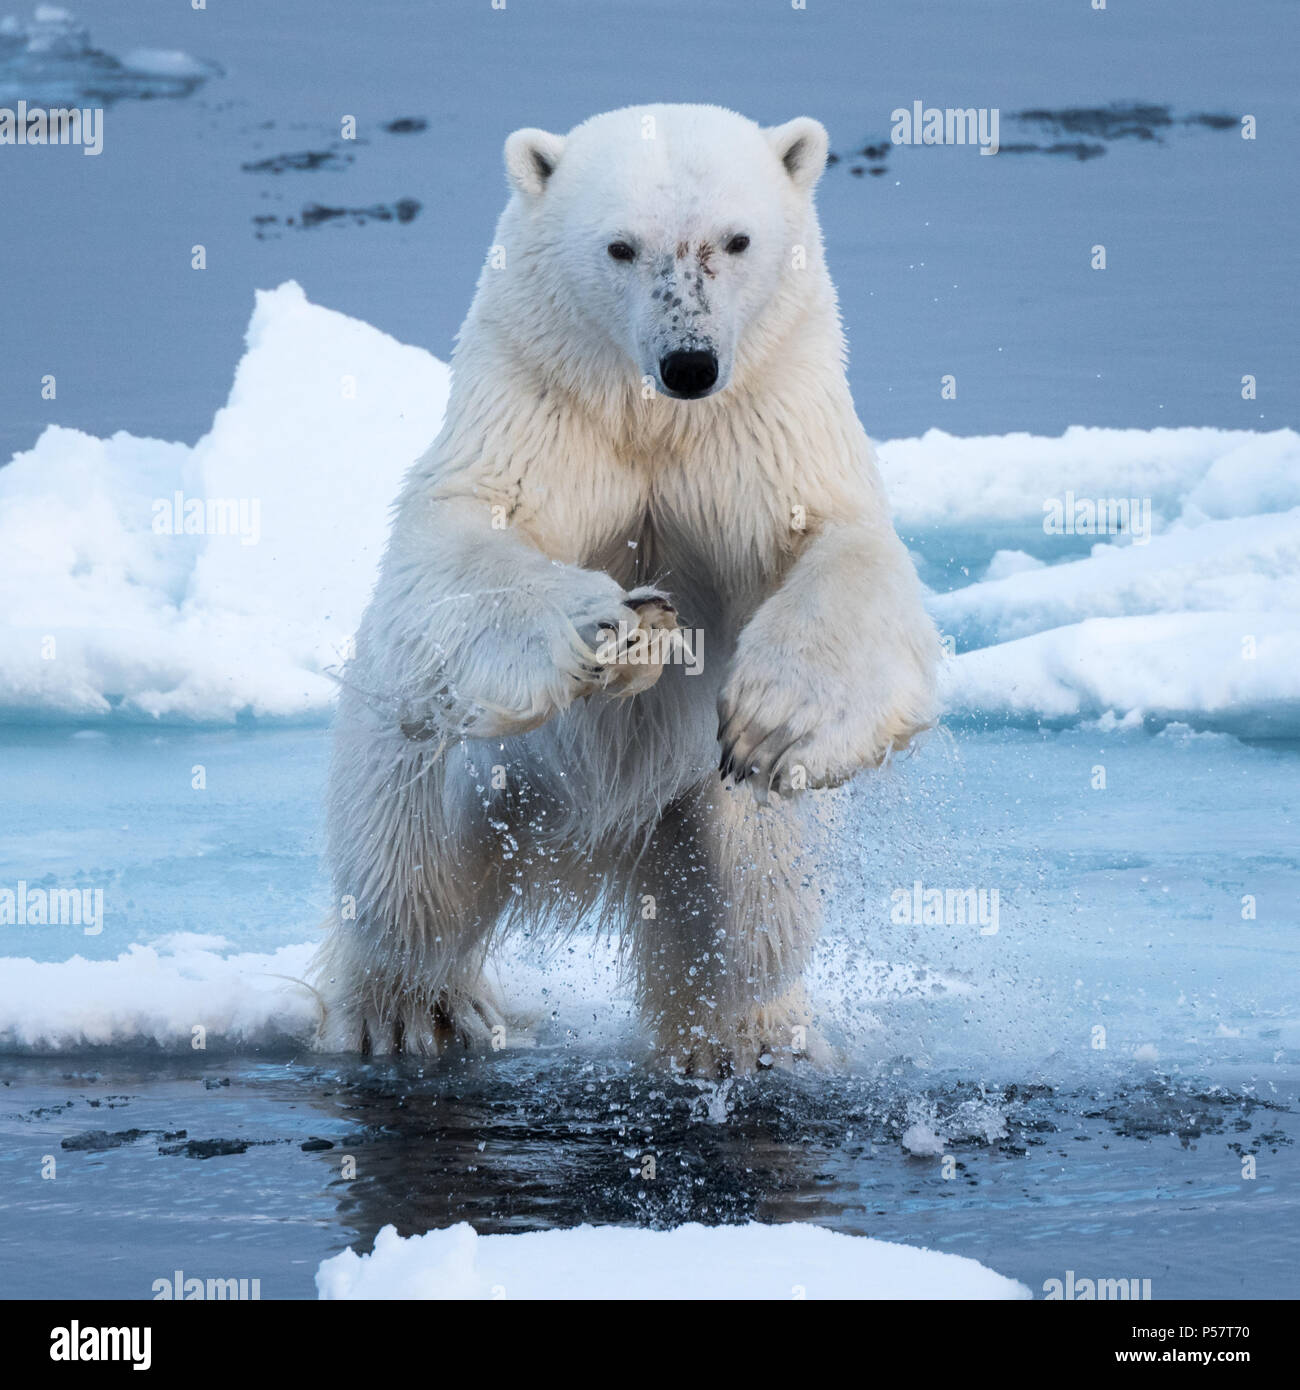 Polar Bear leaping over water - Stock Image